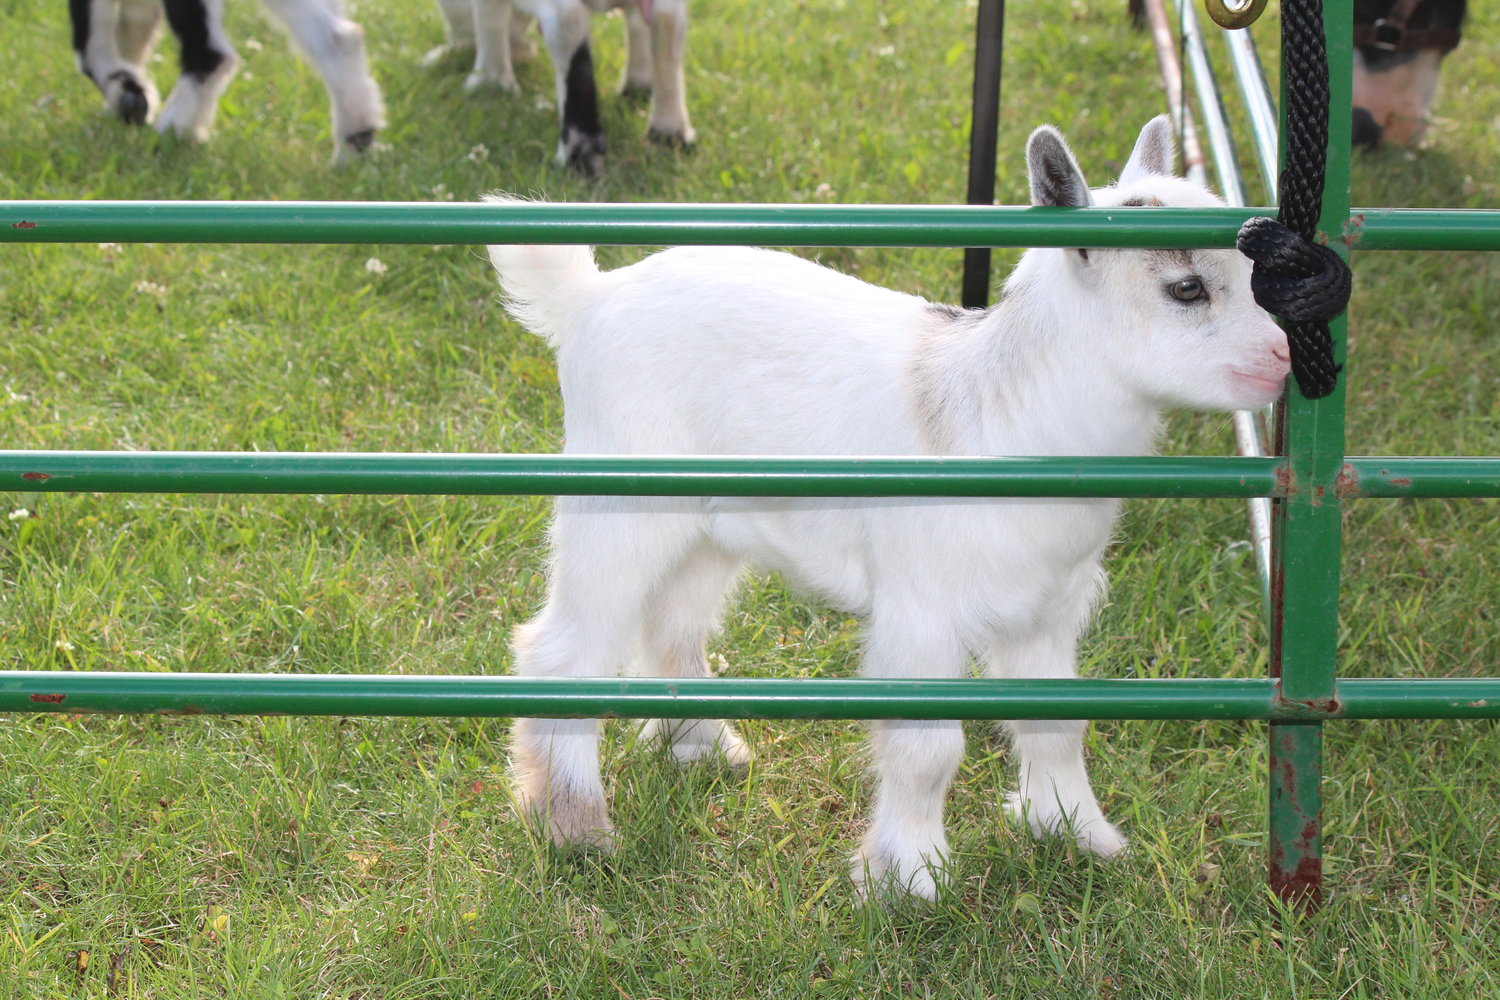 Baby goats pranced in their pen.